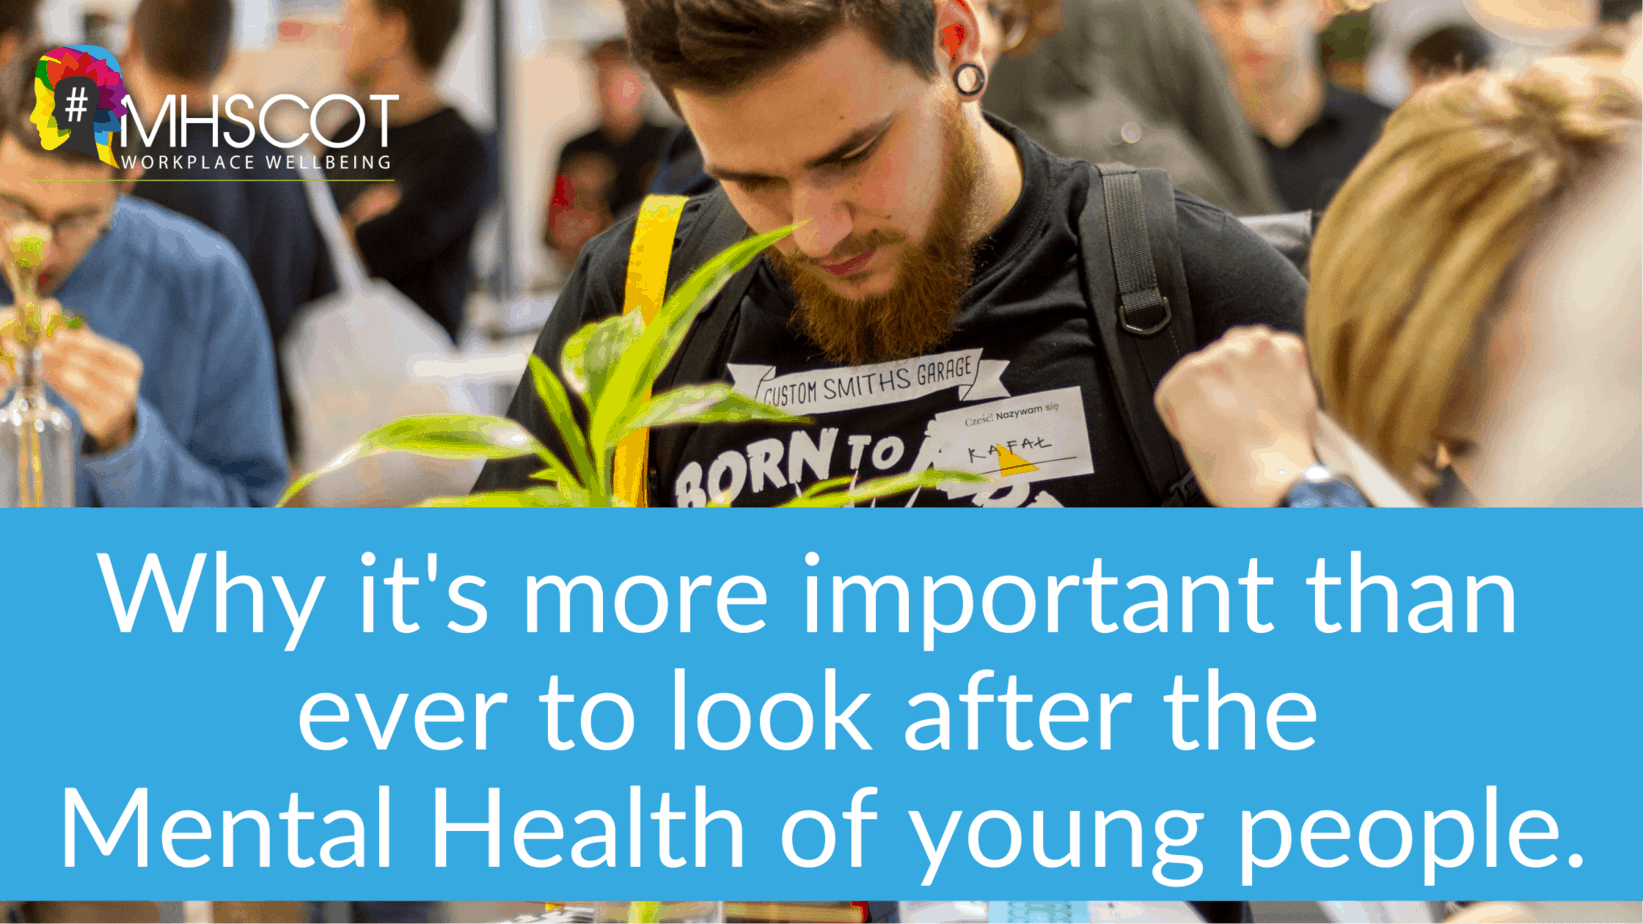 Why it's more important than ever to look after the Mental Health of young people. (2)